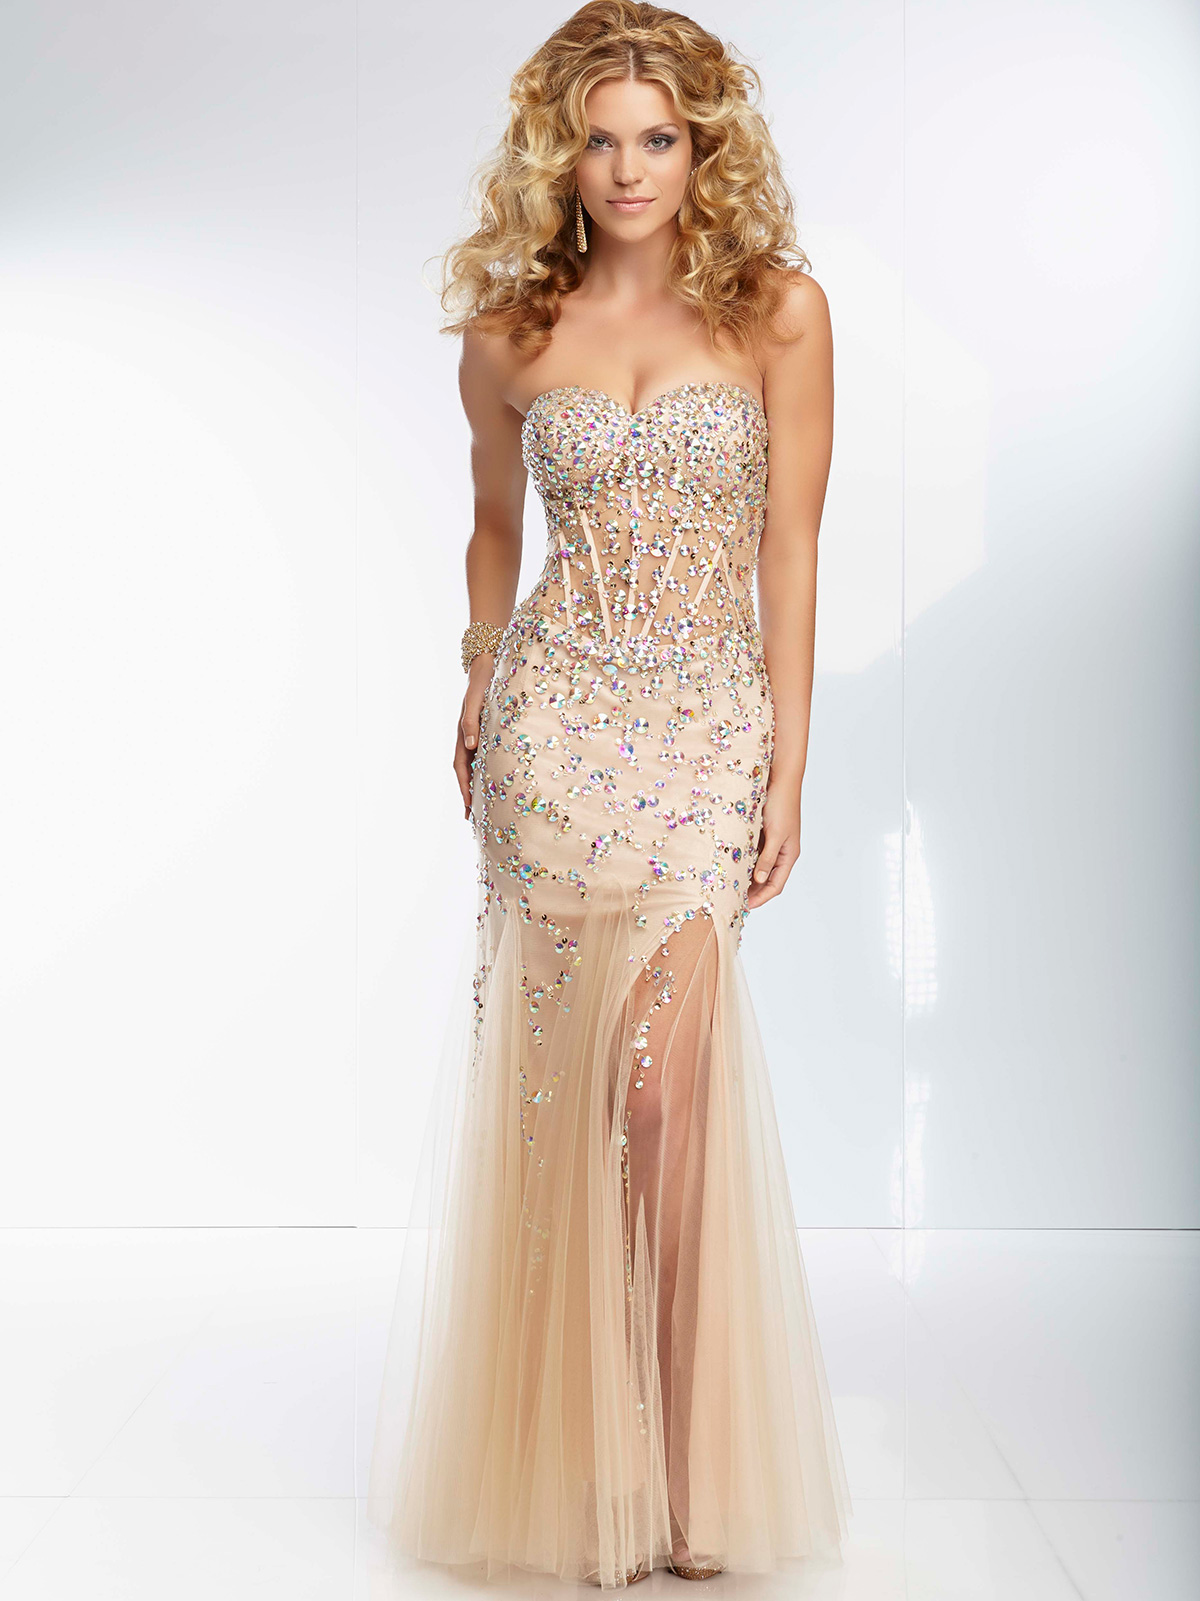 Sheer Prom Dresses - Holiday Dresses